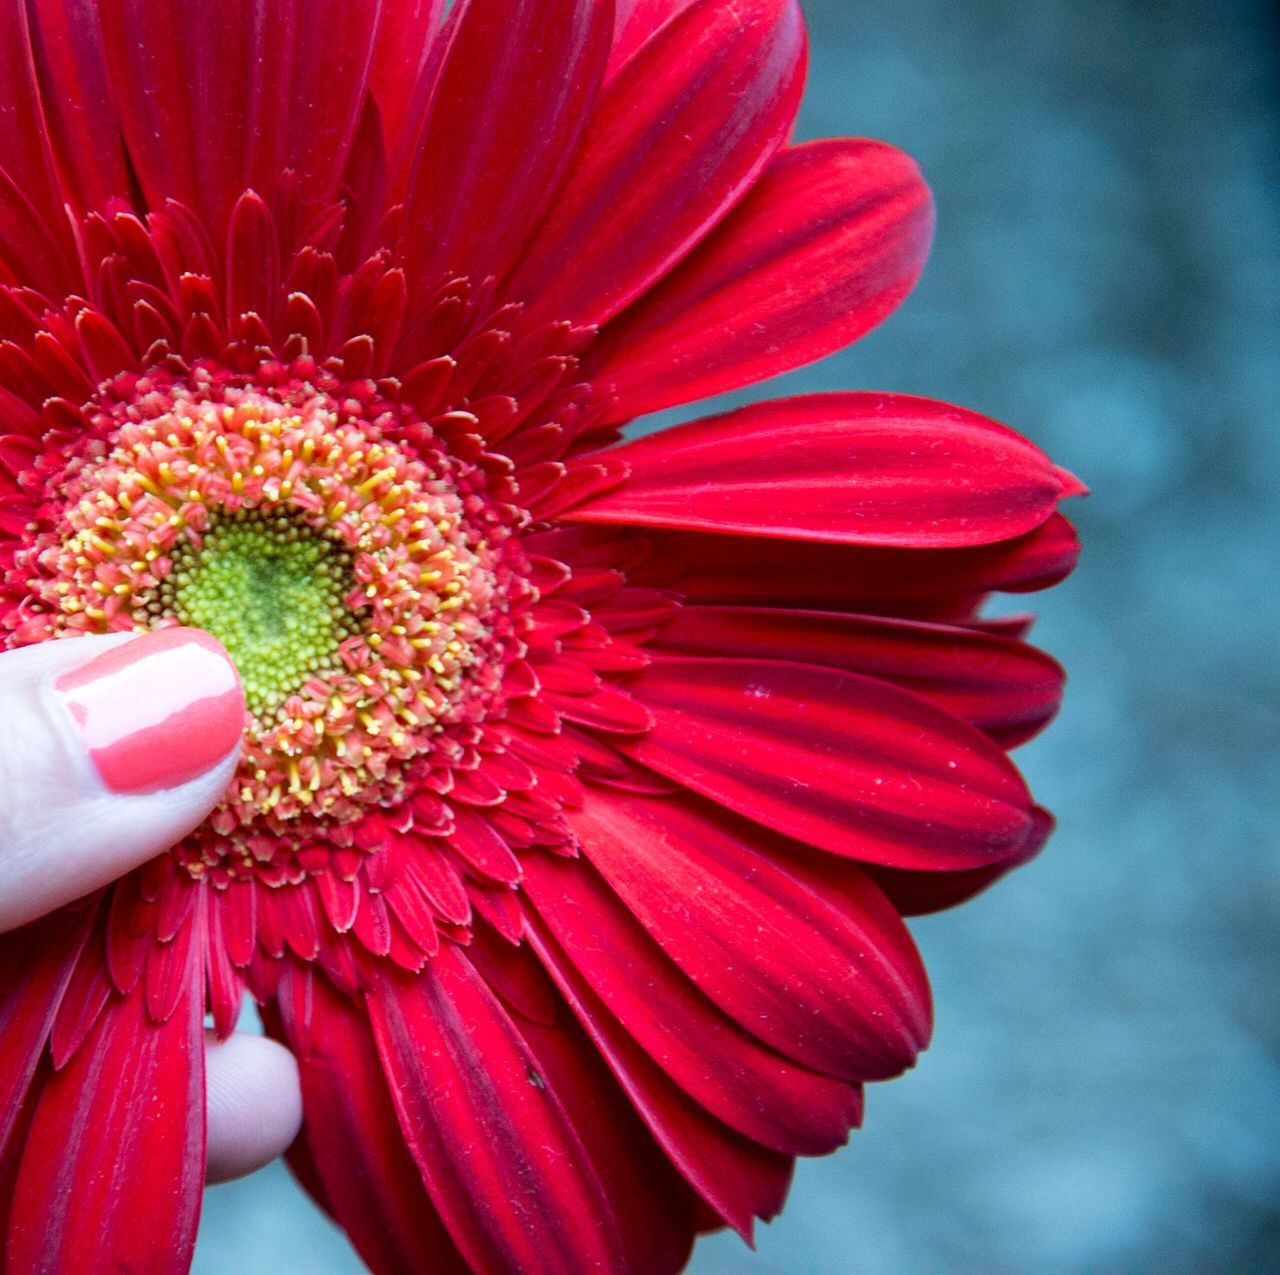 Close-up Red Flower Nails Cosmetics Flower Petal Female Hands